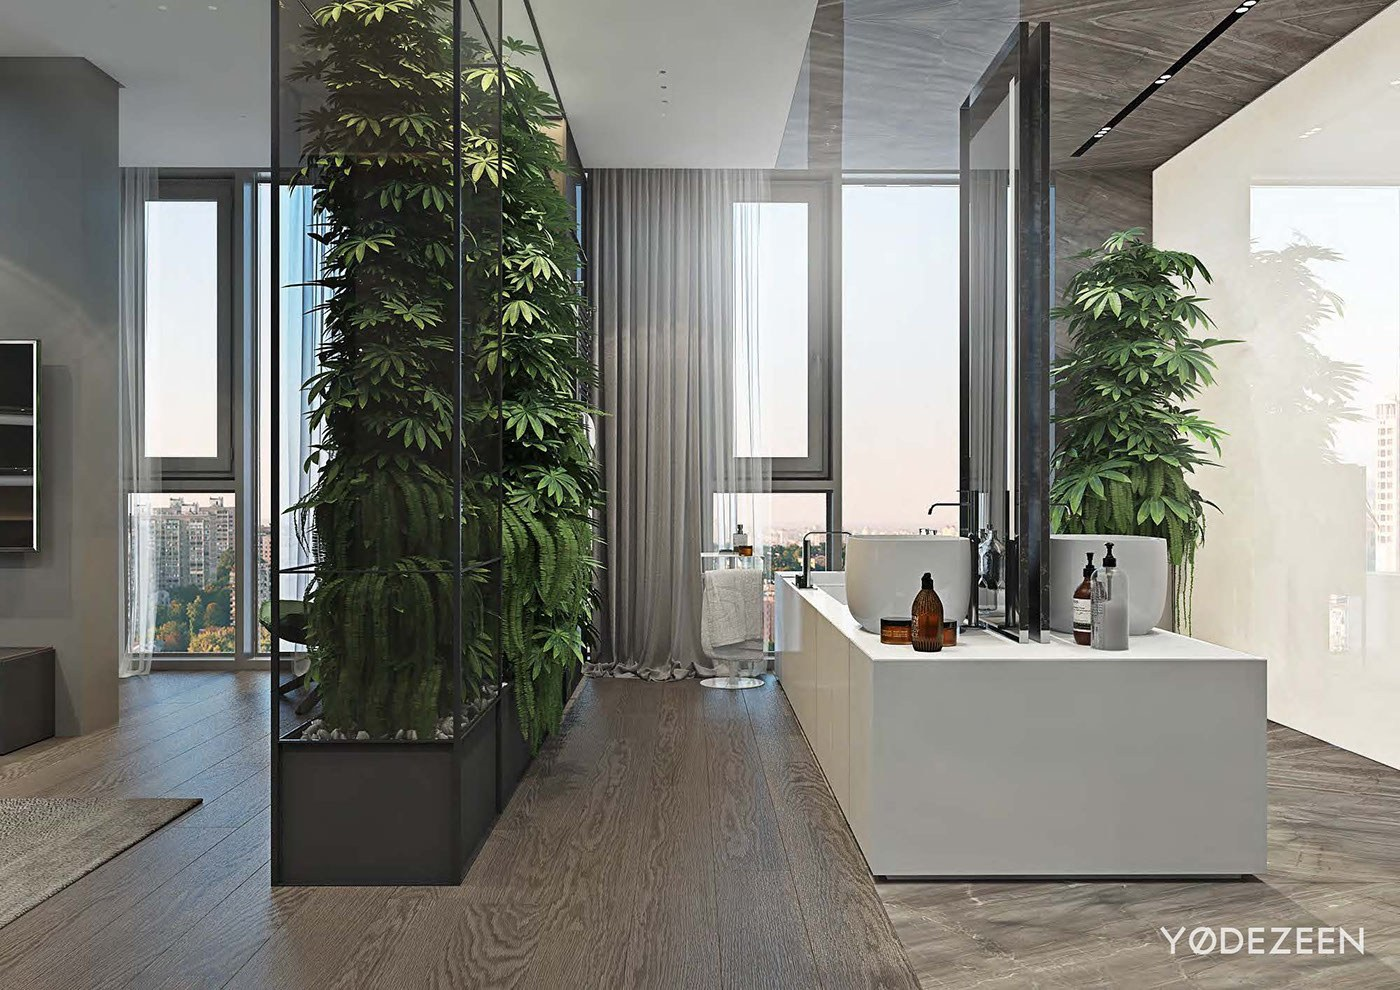 Luxurious Apartment Redefines The Term 'Urban Jungle' images 30